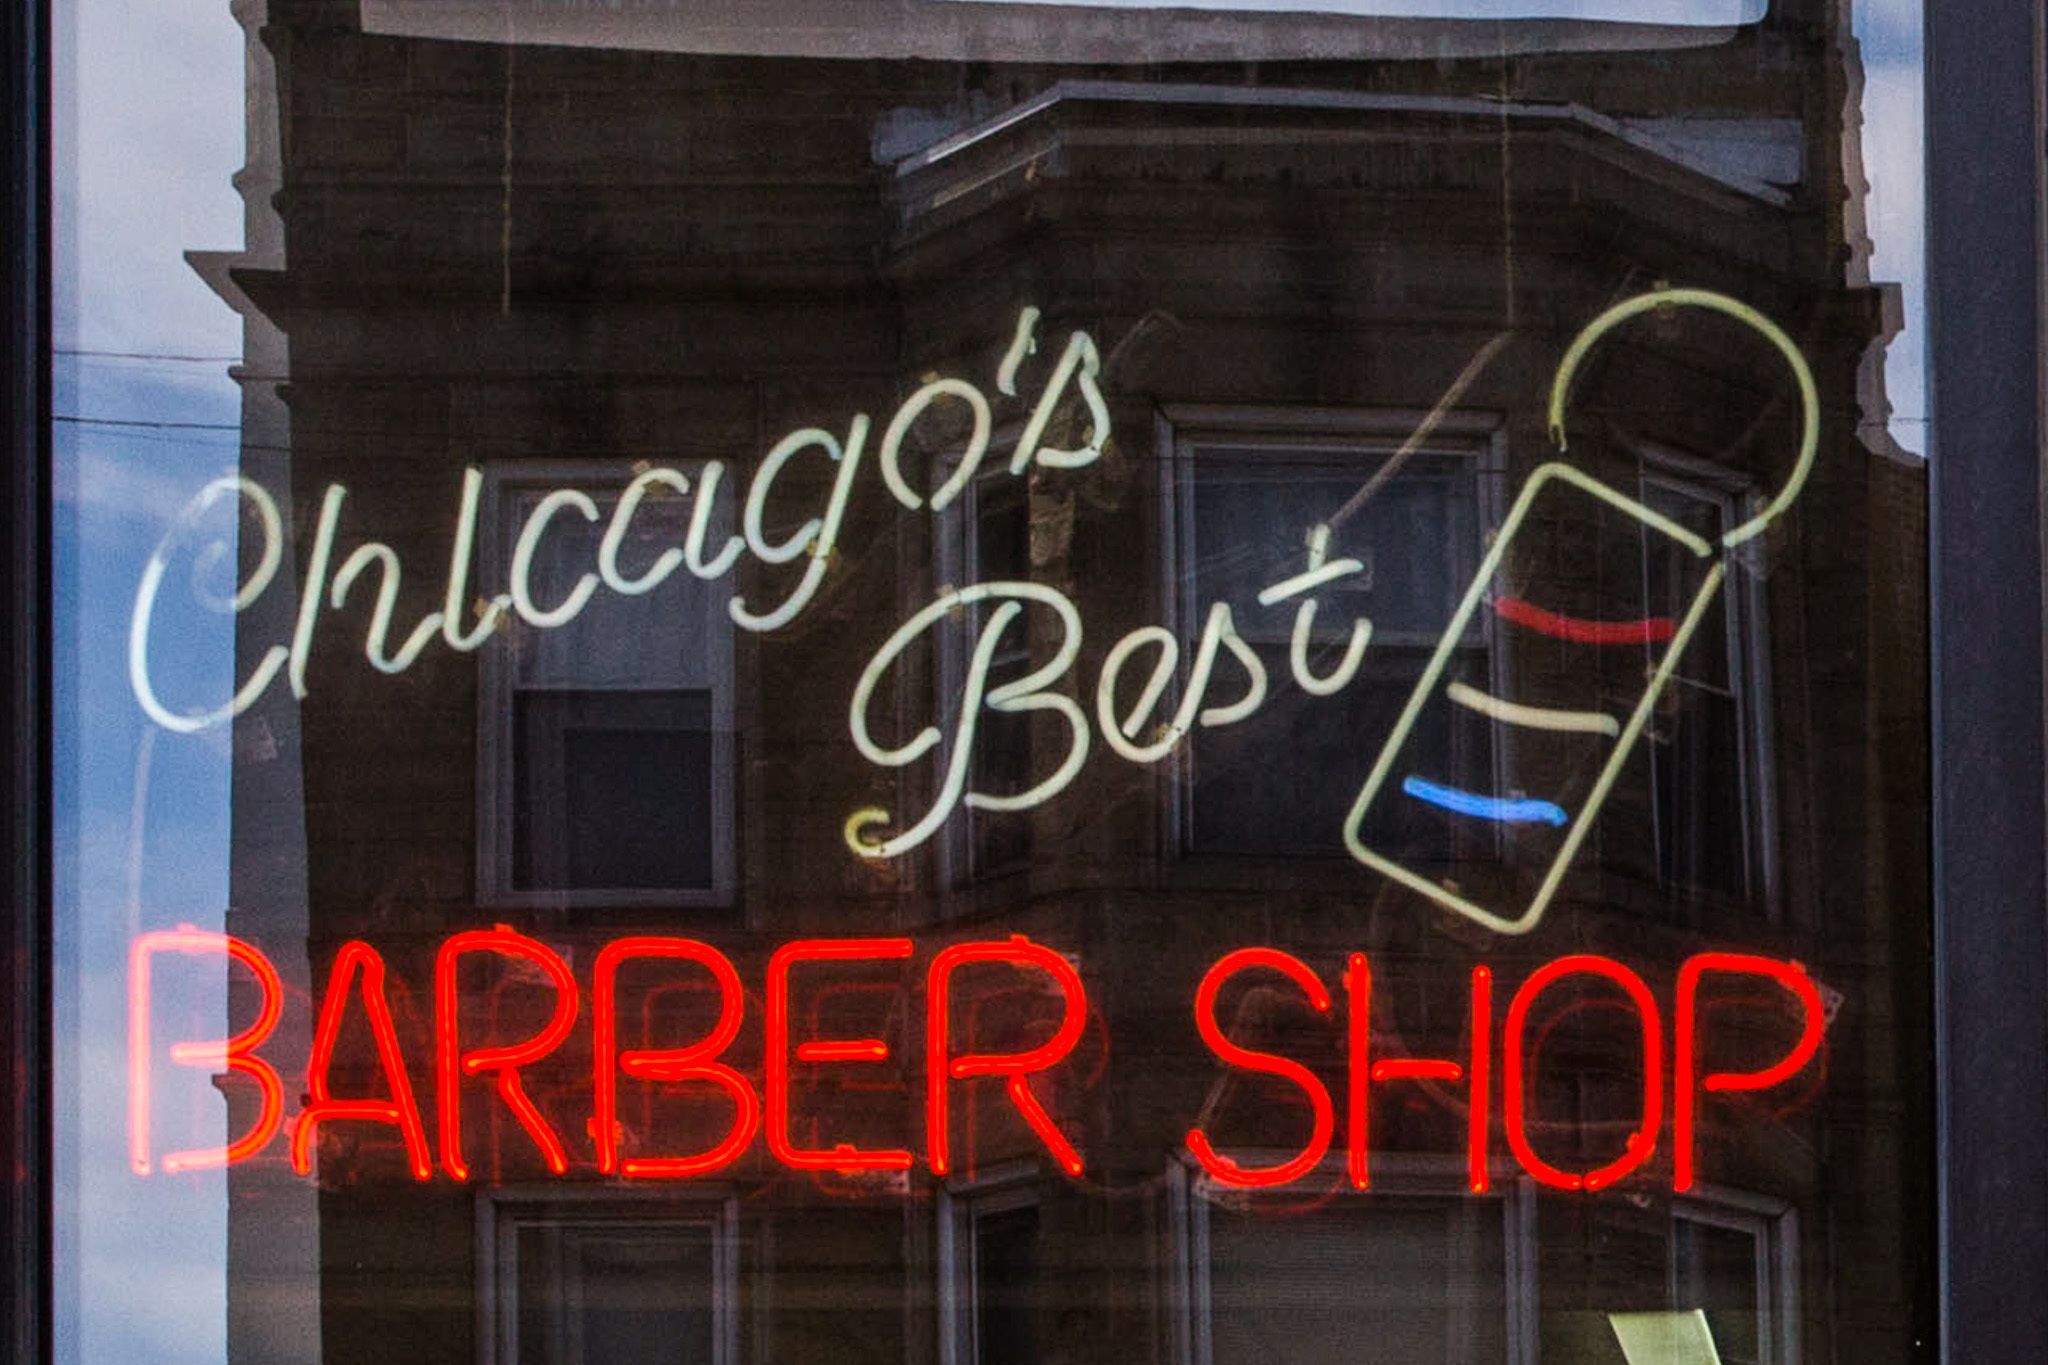 Chicago's Best Barber Shop